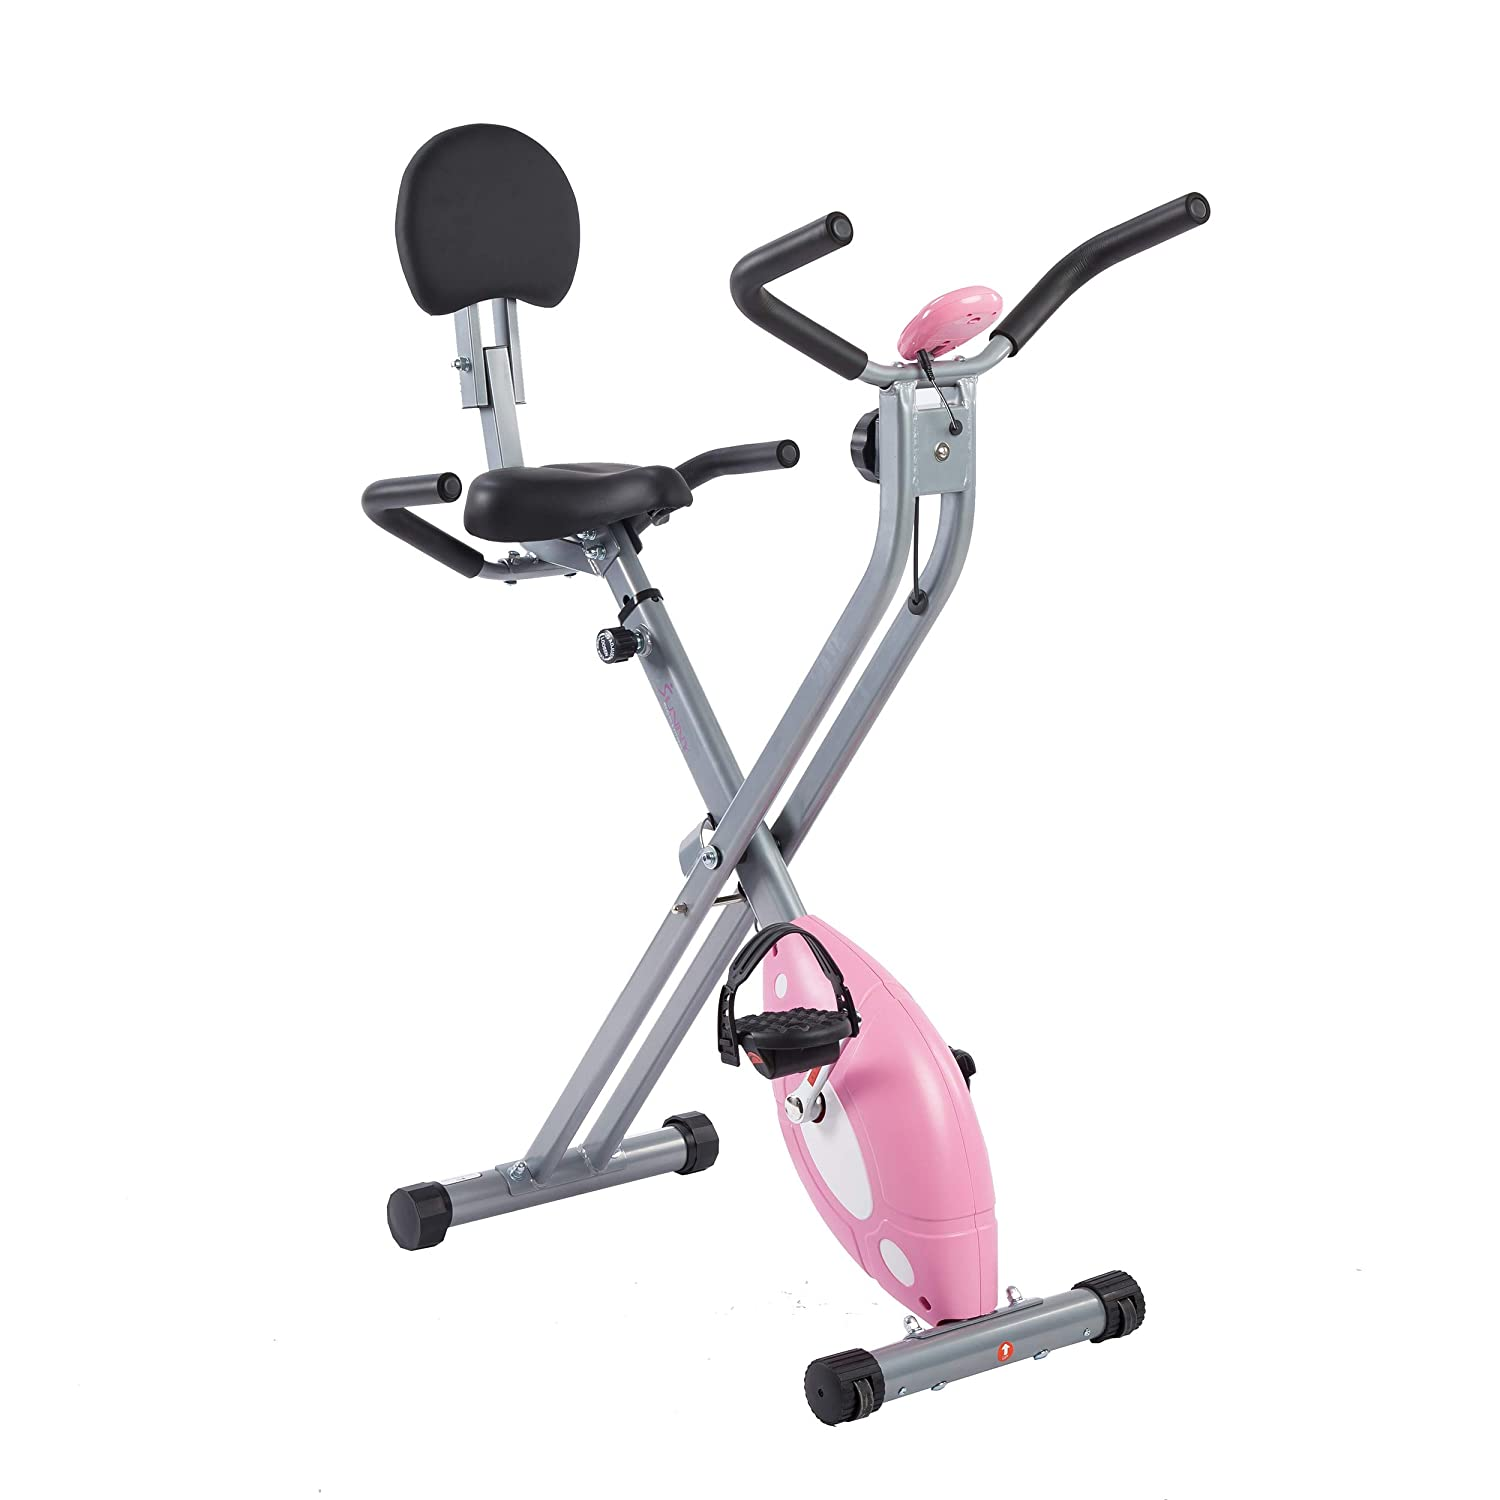 Sunny Health Fitness Magnetic Folding Recumbent Bike Exercise Bike, 220lb Capacity – SF-RB1117